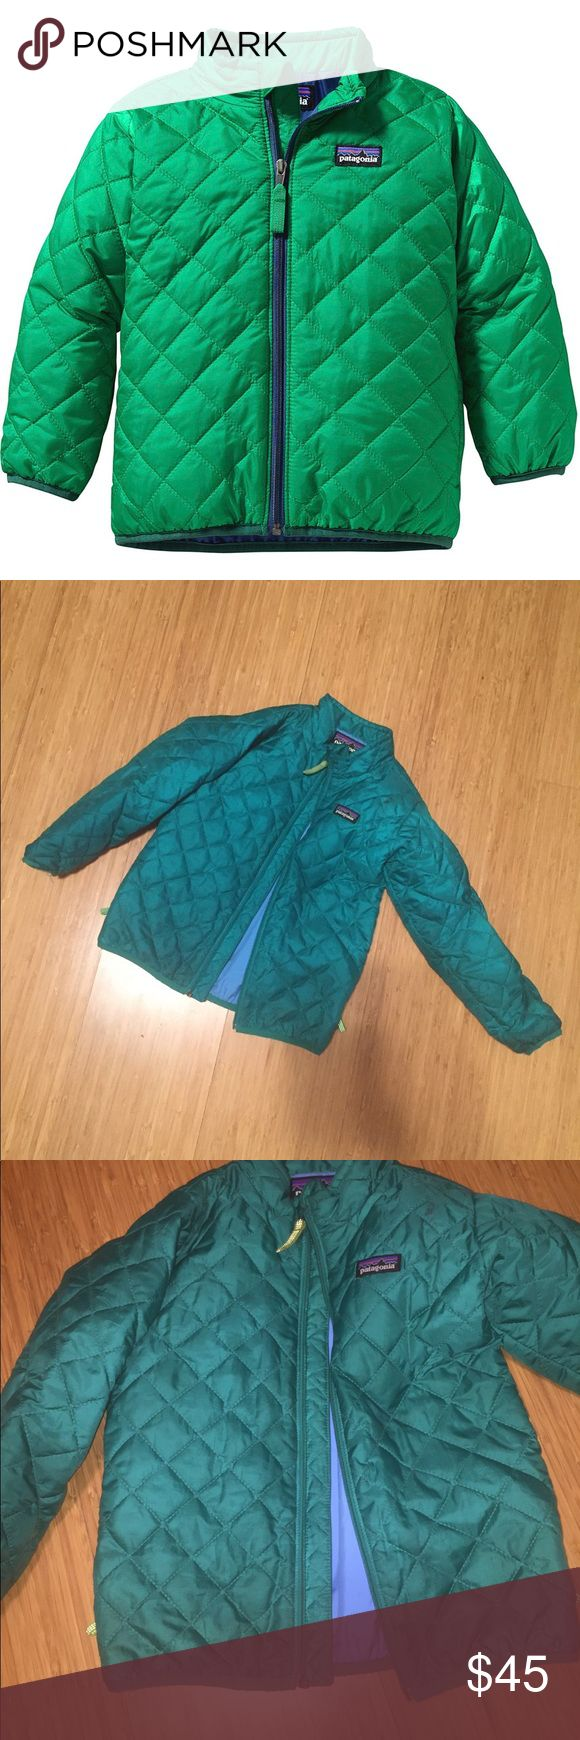 4T Children's Patagonia Nano Puff Down Jacket Adorable lightweight and warm Patagonia quilted down nano puff jacket! Size 4T. Photos show it a teal-ish color but it is really more of a teal green color with a blue liner. There are a couple of stains and the quilting is unraveling in a couple of spots but the tag is fresh to never be lost at school! Patagonia lifetime warranty as well to pass down for many kiddos Patagonia Jackets & Coats Puffers